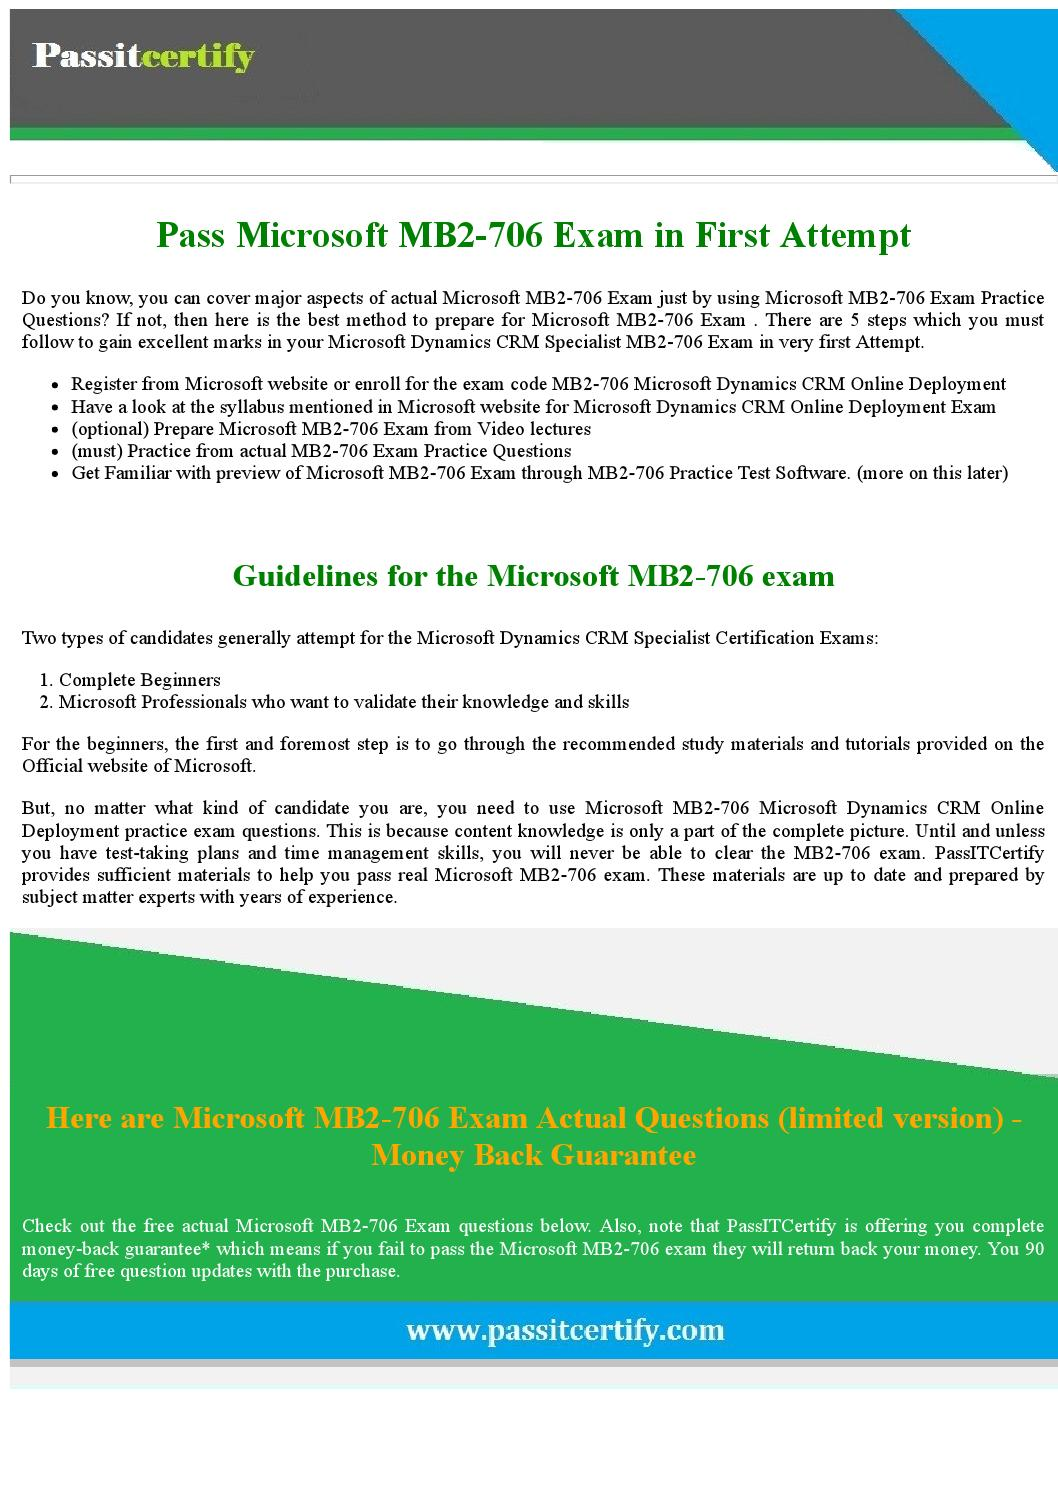 Pass Microsoft Specialist MB2-706 Exam By PassItCertify